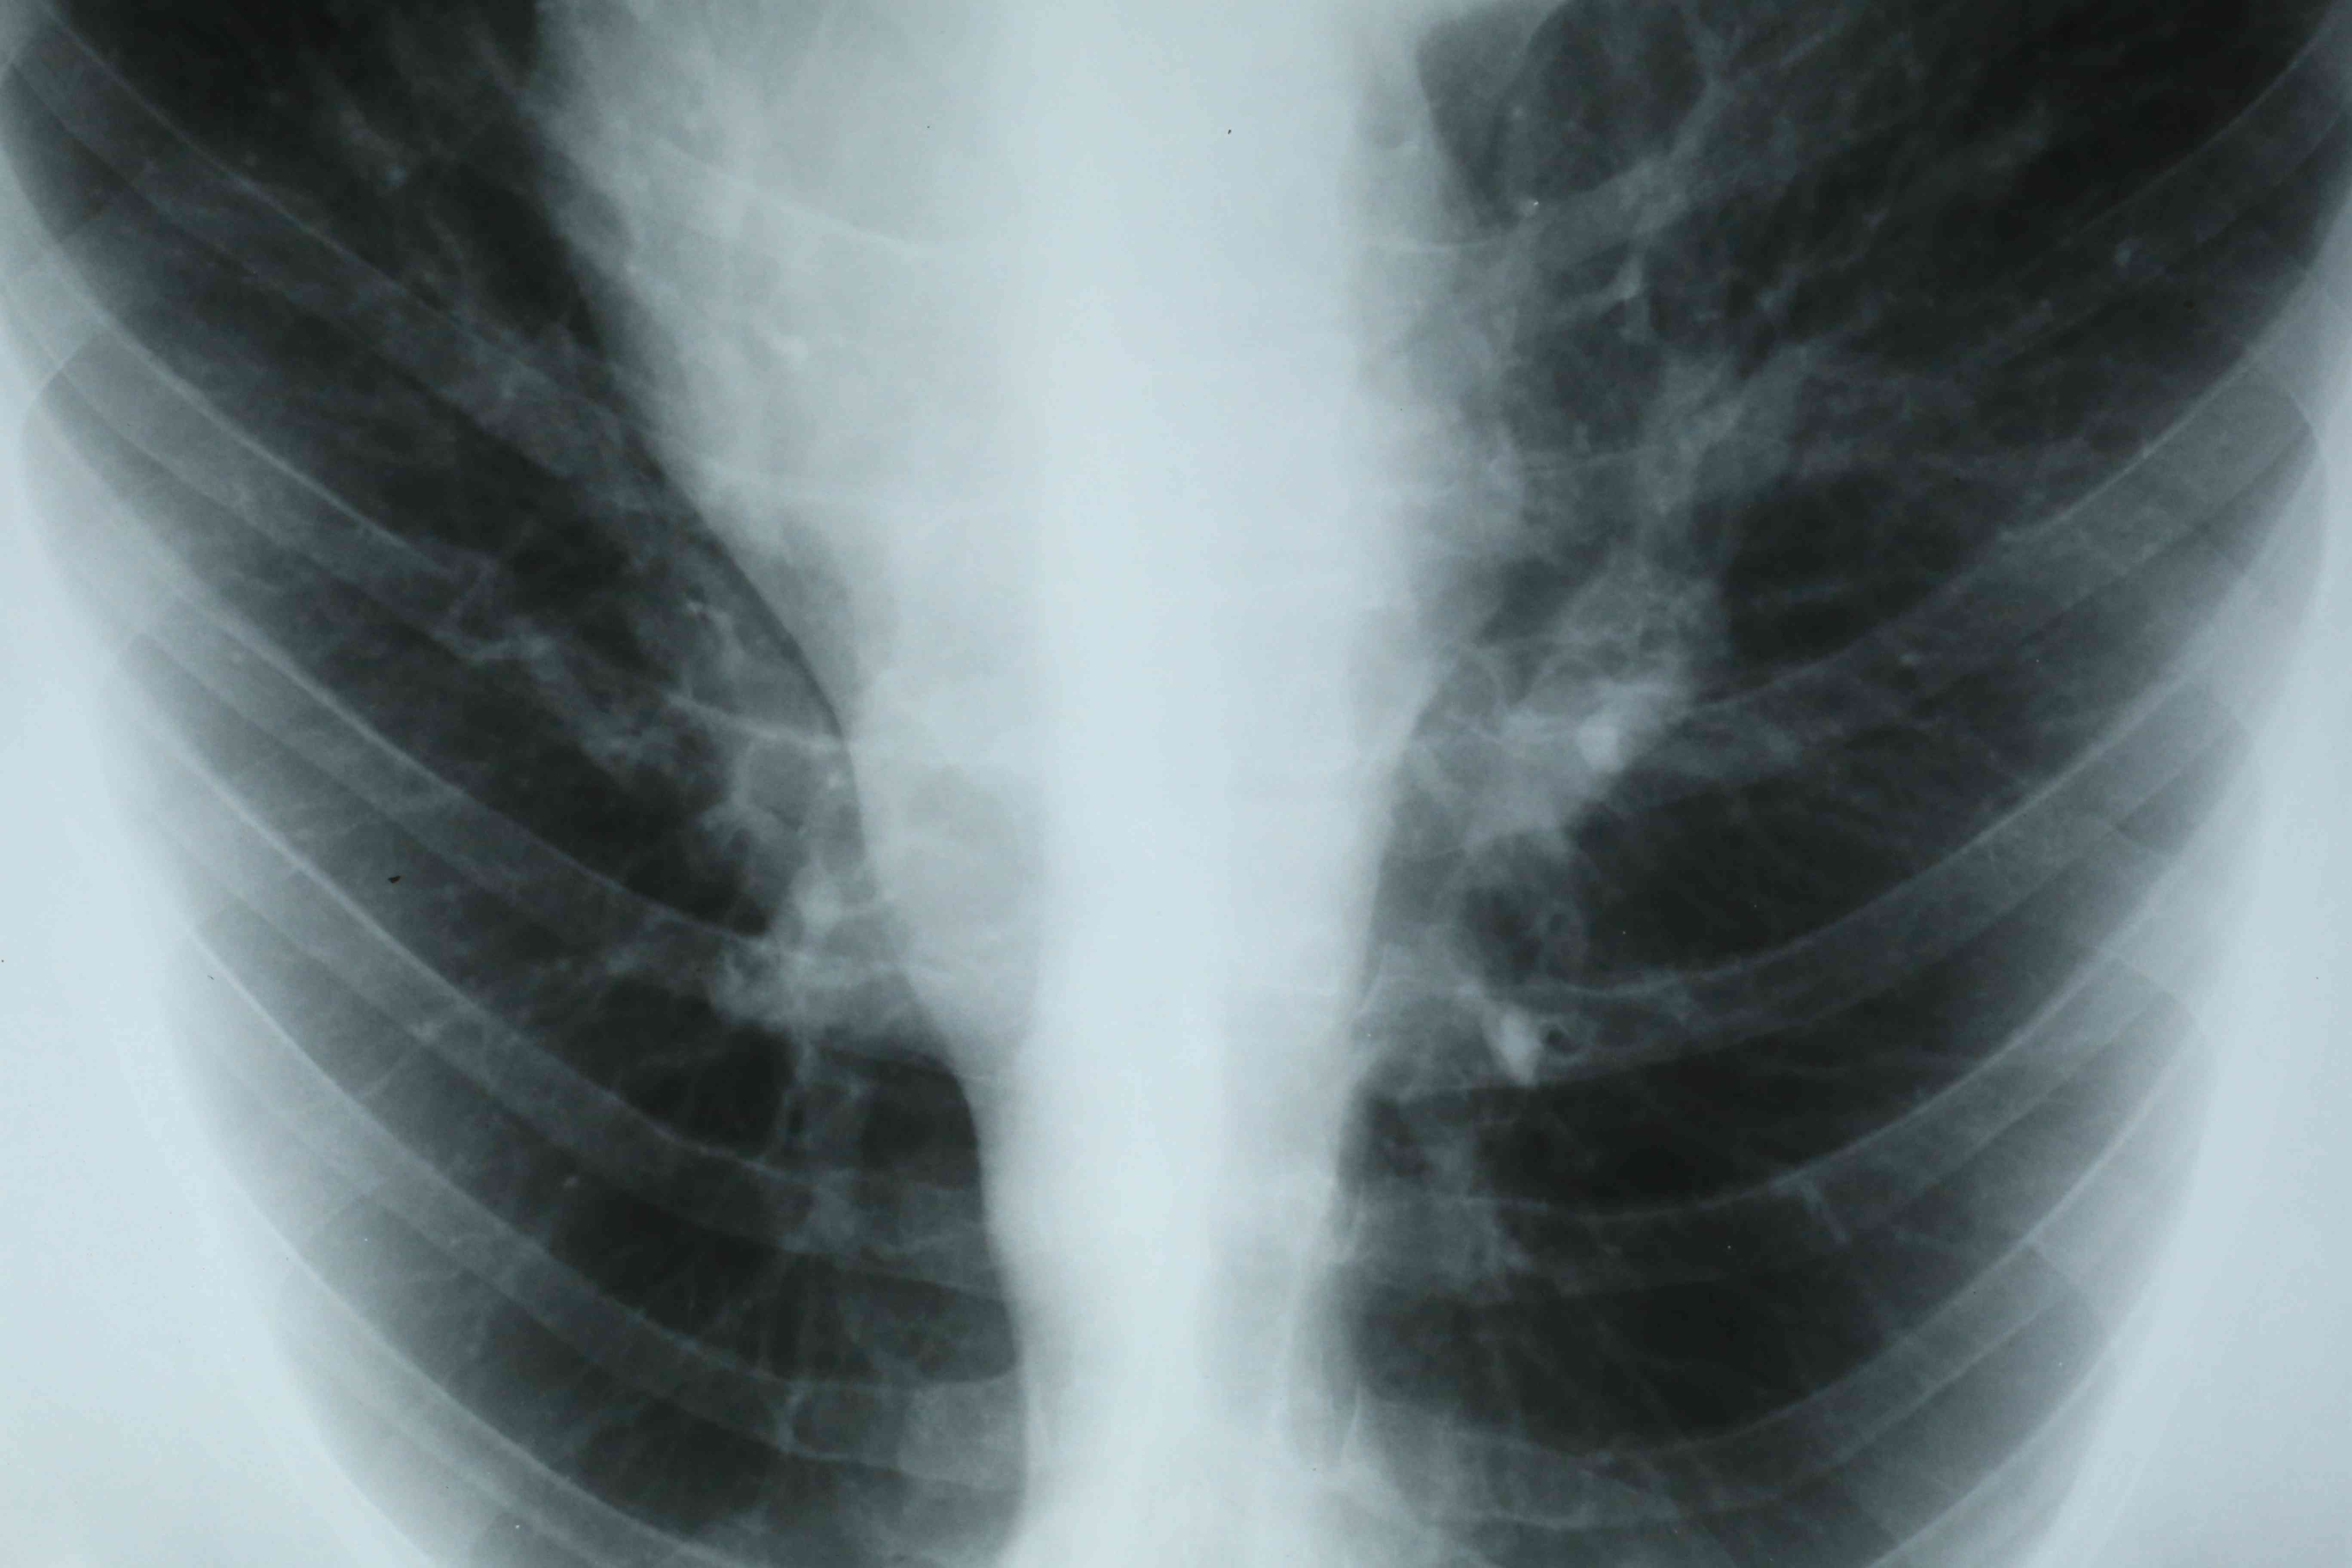 Chest x-ray image on light table showing of a patient's lungs and respiratory tract